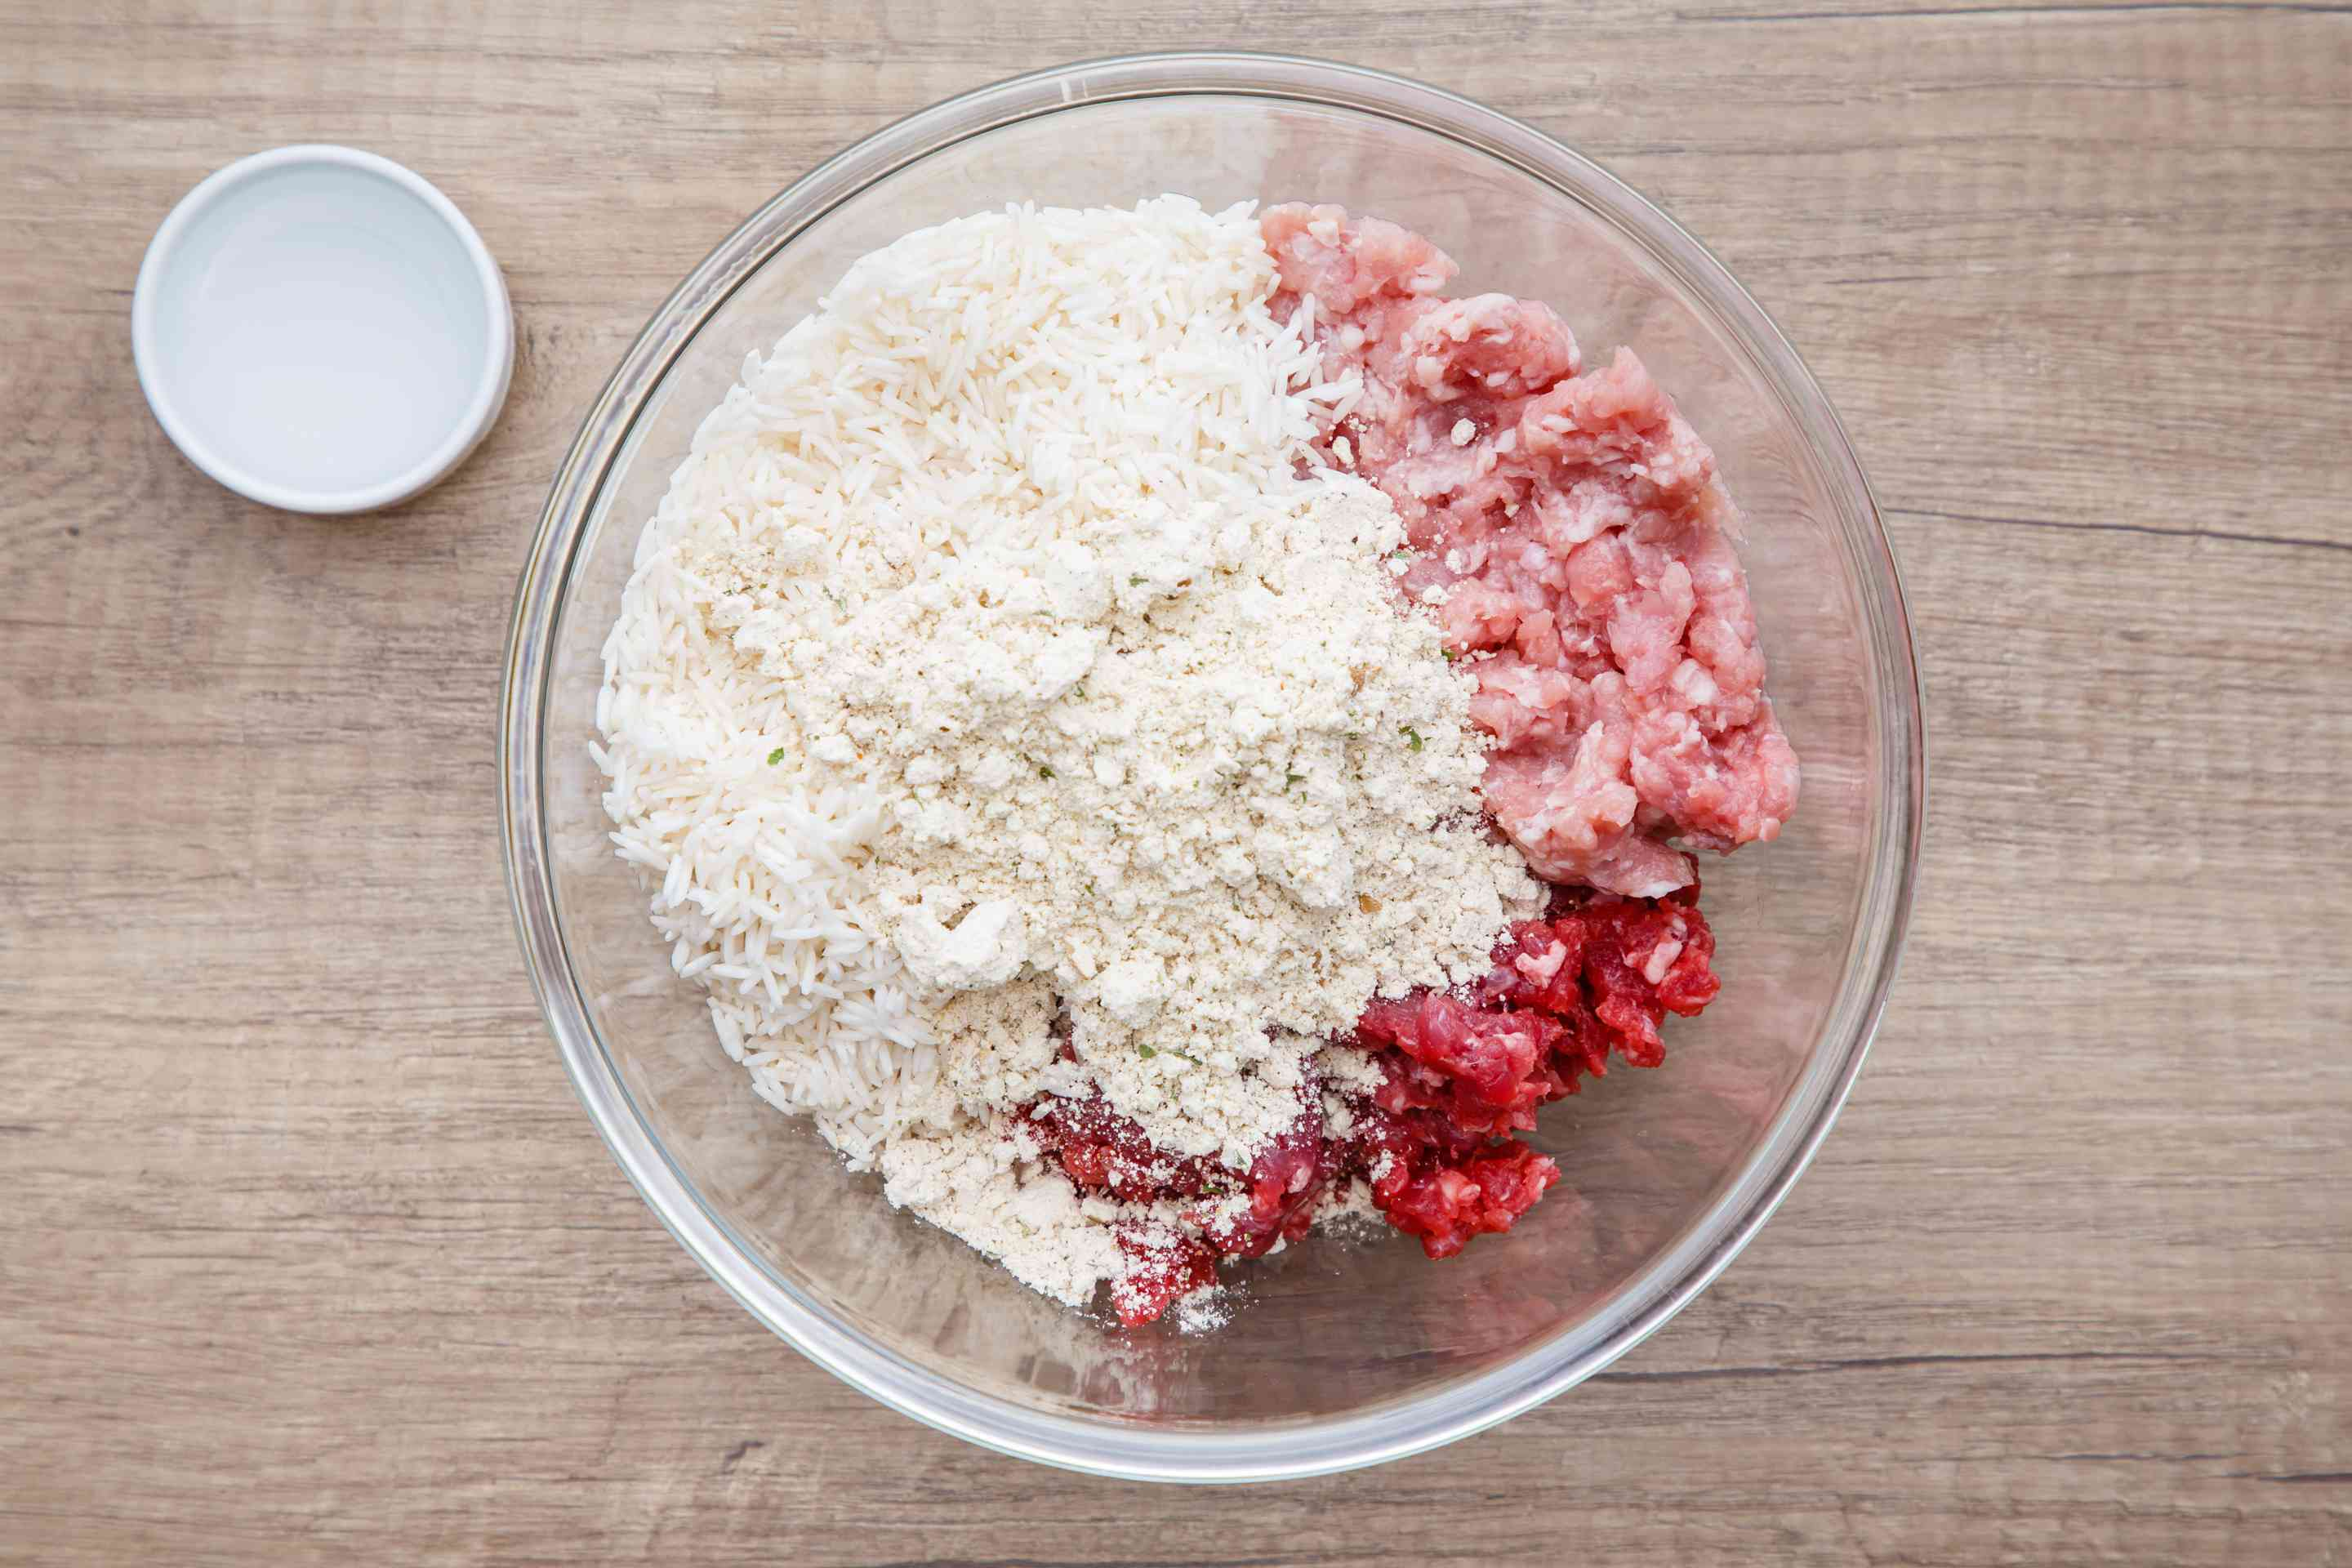 Ingredients for filling in a bowl